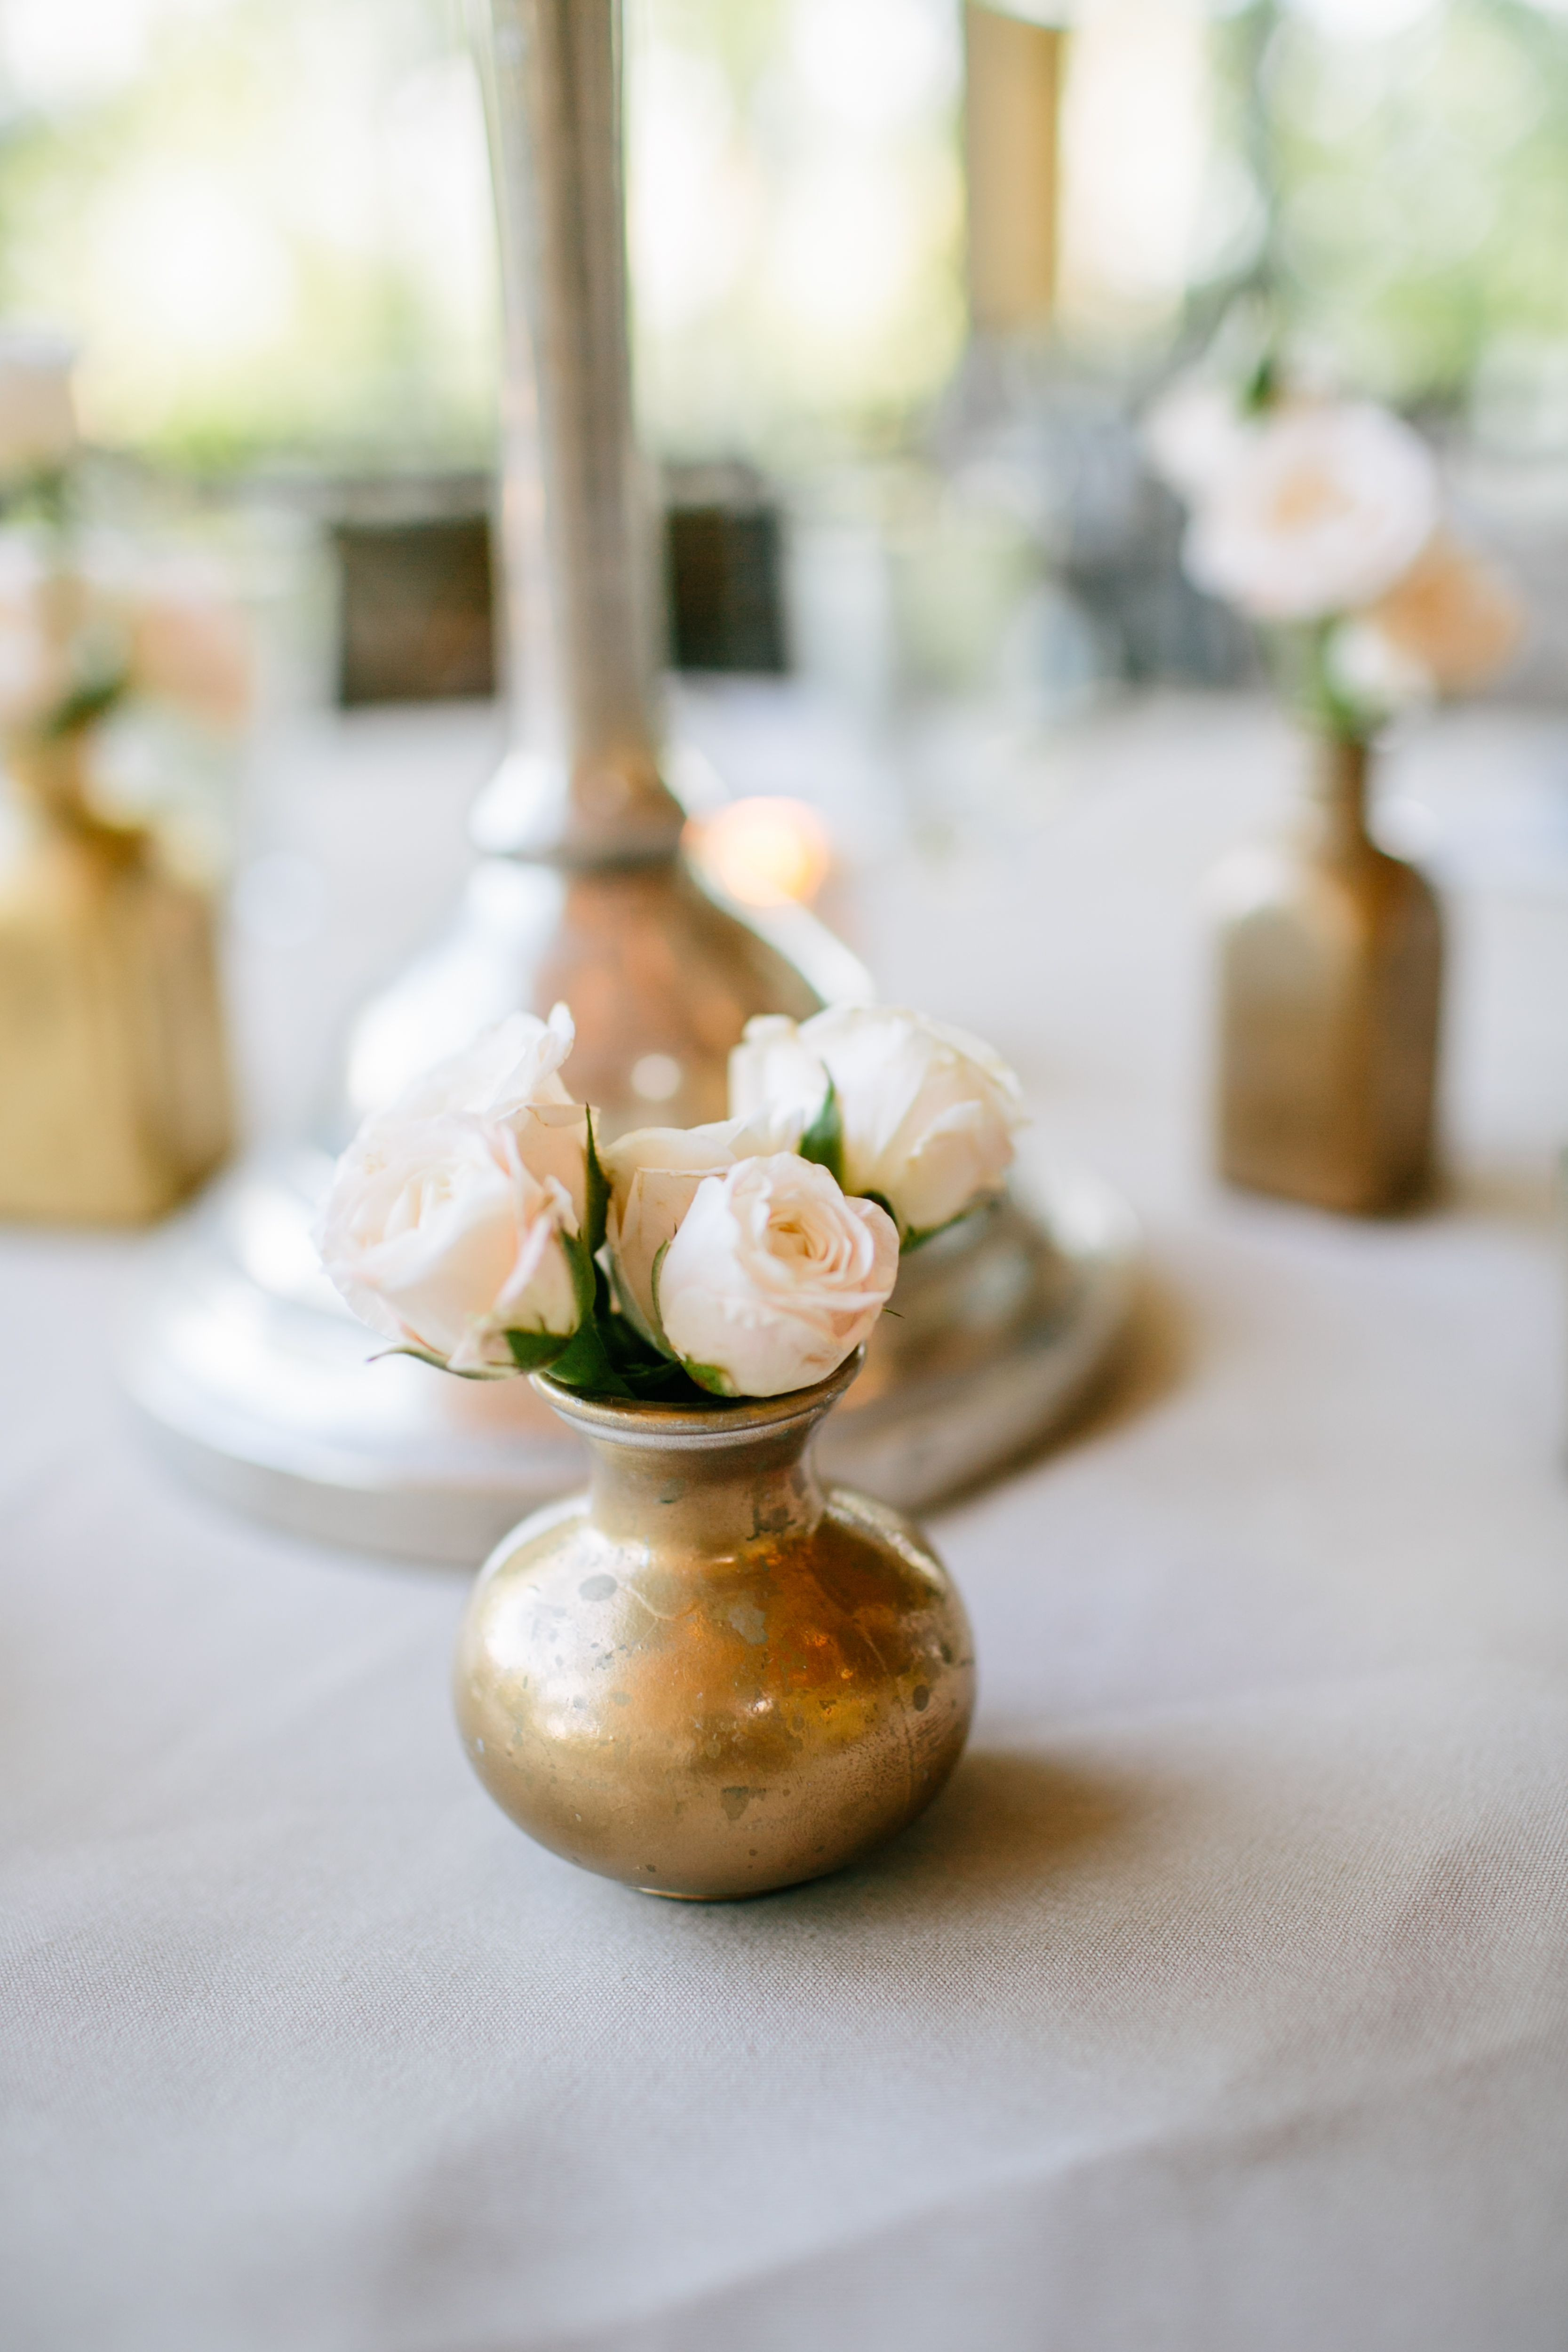 tall wedding vases for sale of gold bud vases photograph sell wedding decor awesome h vases bud for gold bud vases photos the tall cocktail tables will a single gold bud vase with ivory